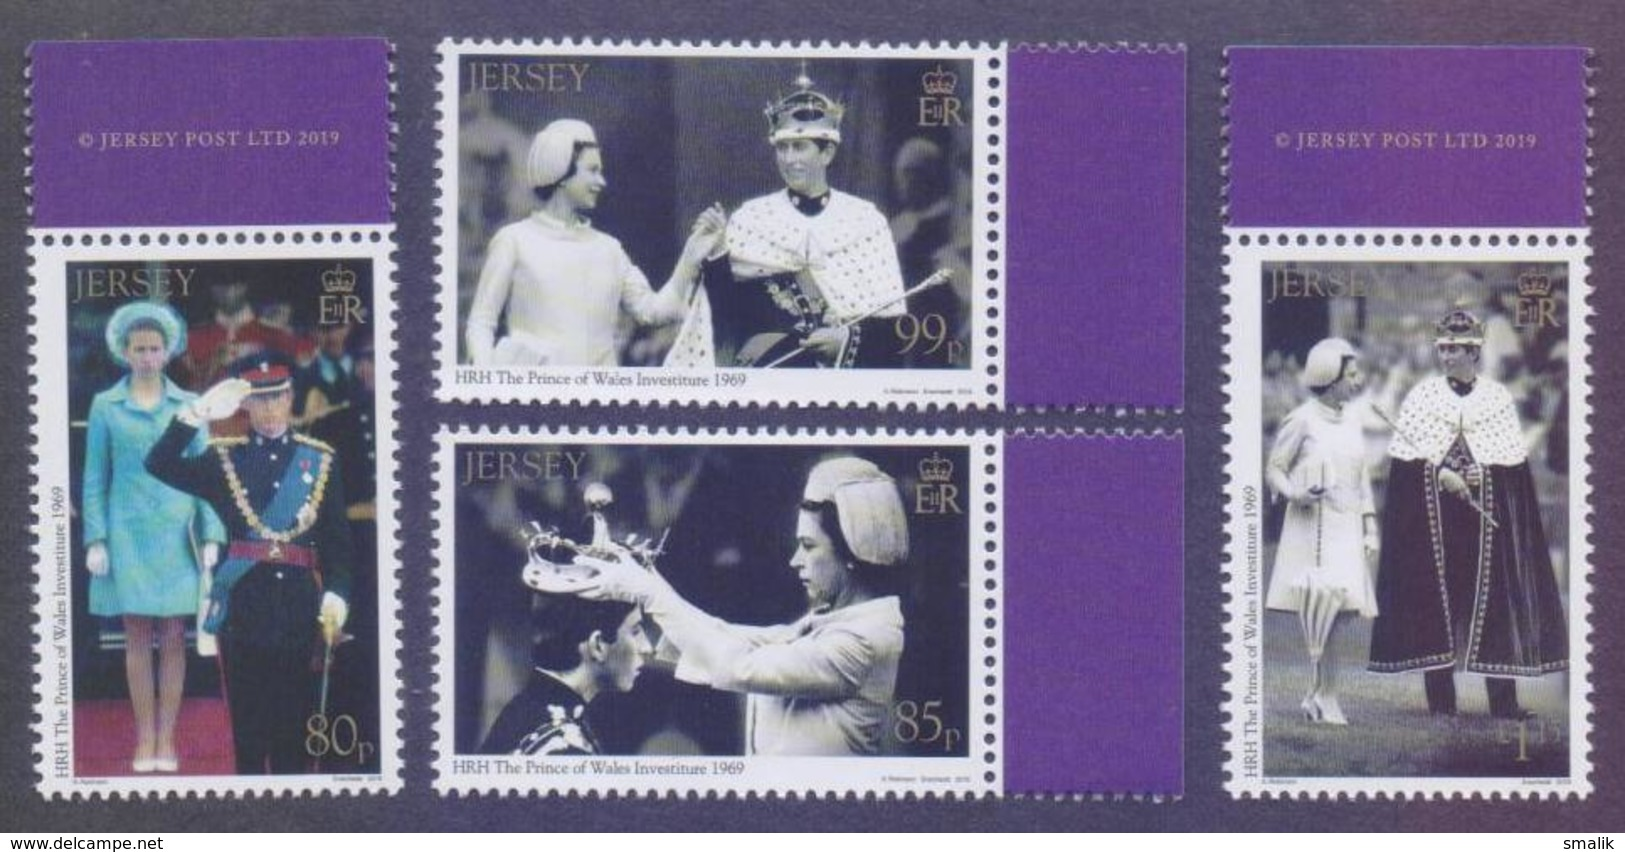 JERSEY 2019 - CHARLES, The Investiture Of HRH Prince Of Wales 1969-2019, Complete Set Of 4v. MNH - Jersey